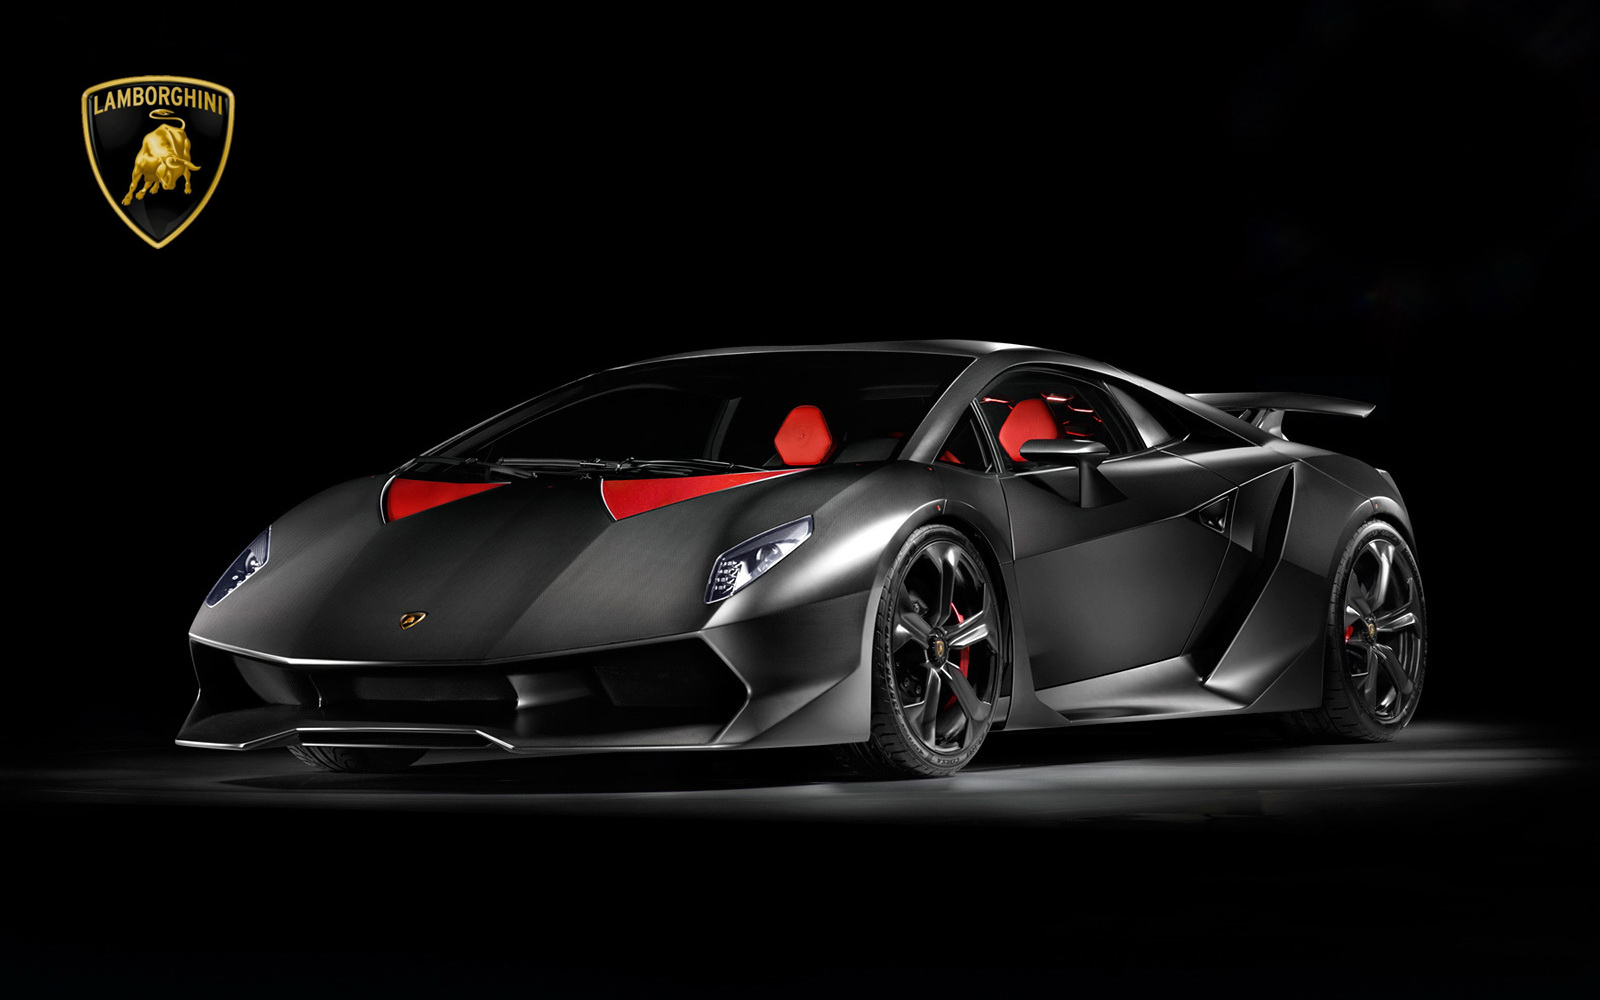 HD wallpaper Lamborghini Sesto Elemento Hd Wallpaper For Desktop by 1600x1000